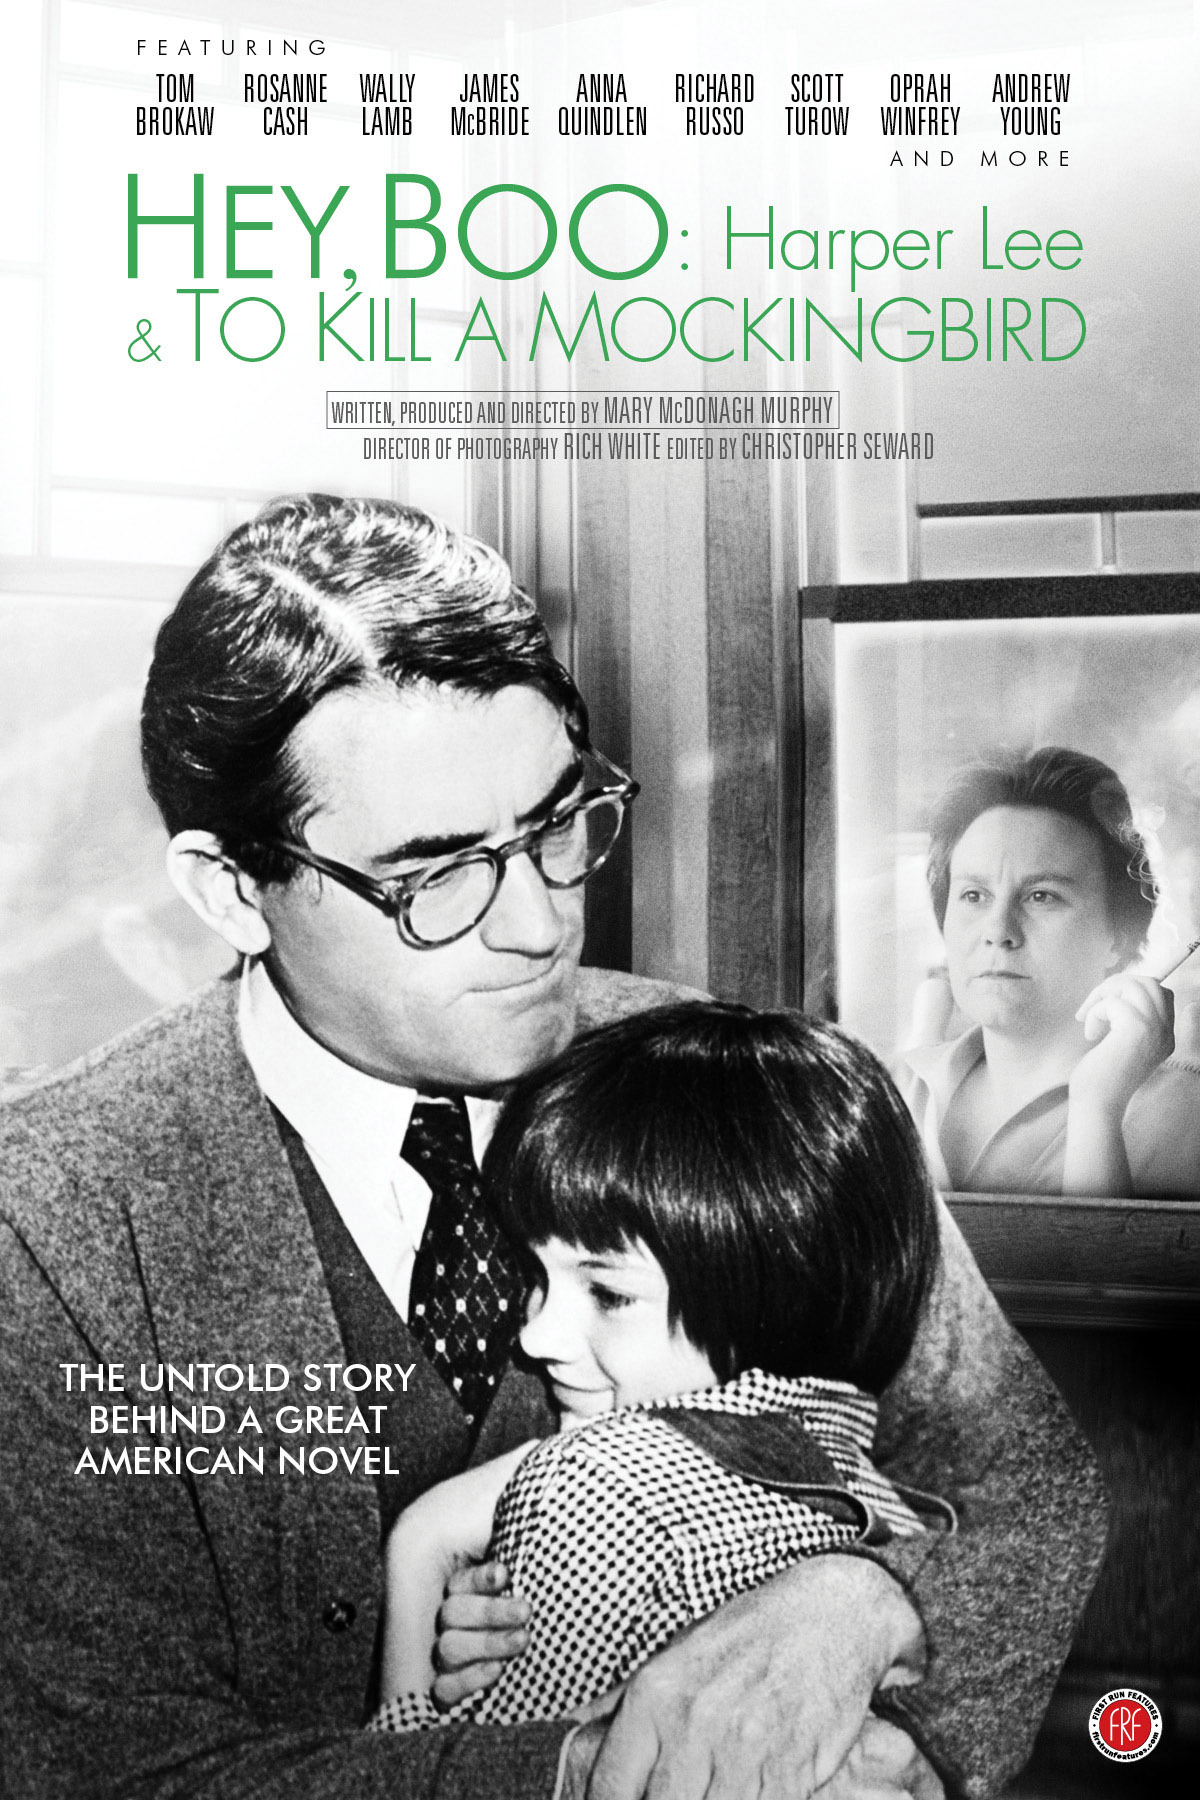 to kill a mockingbird film online